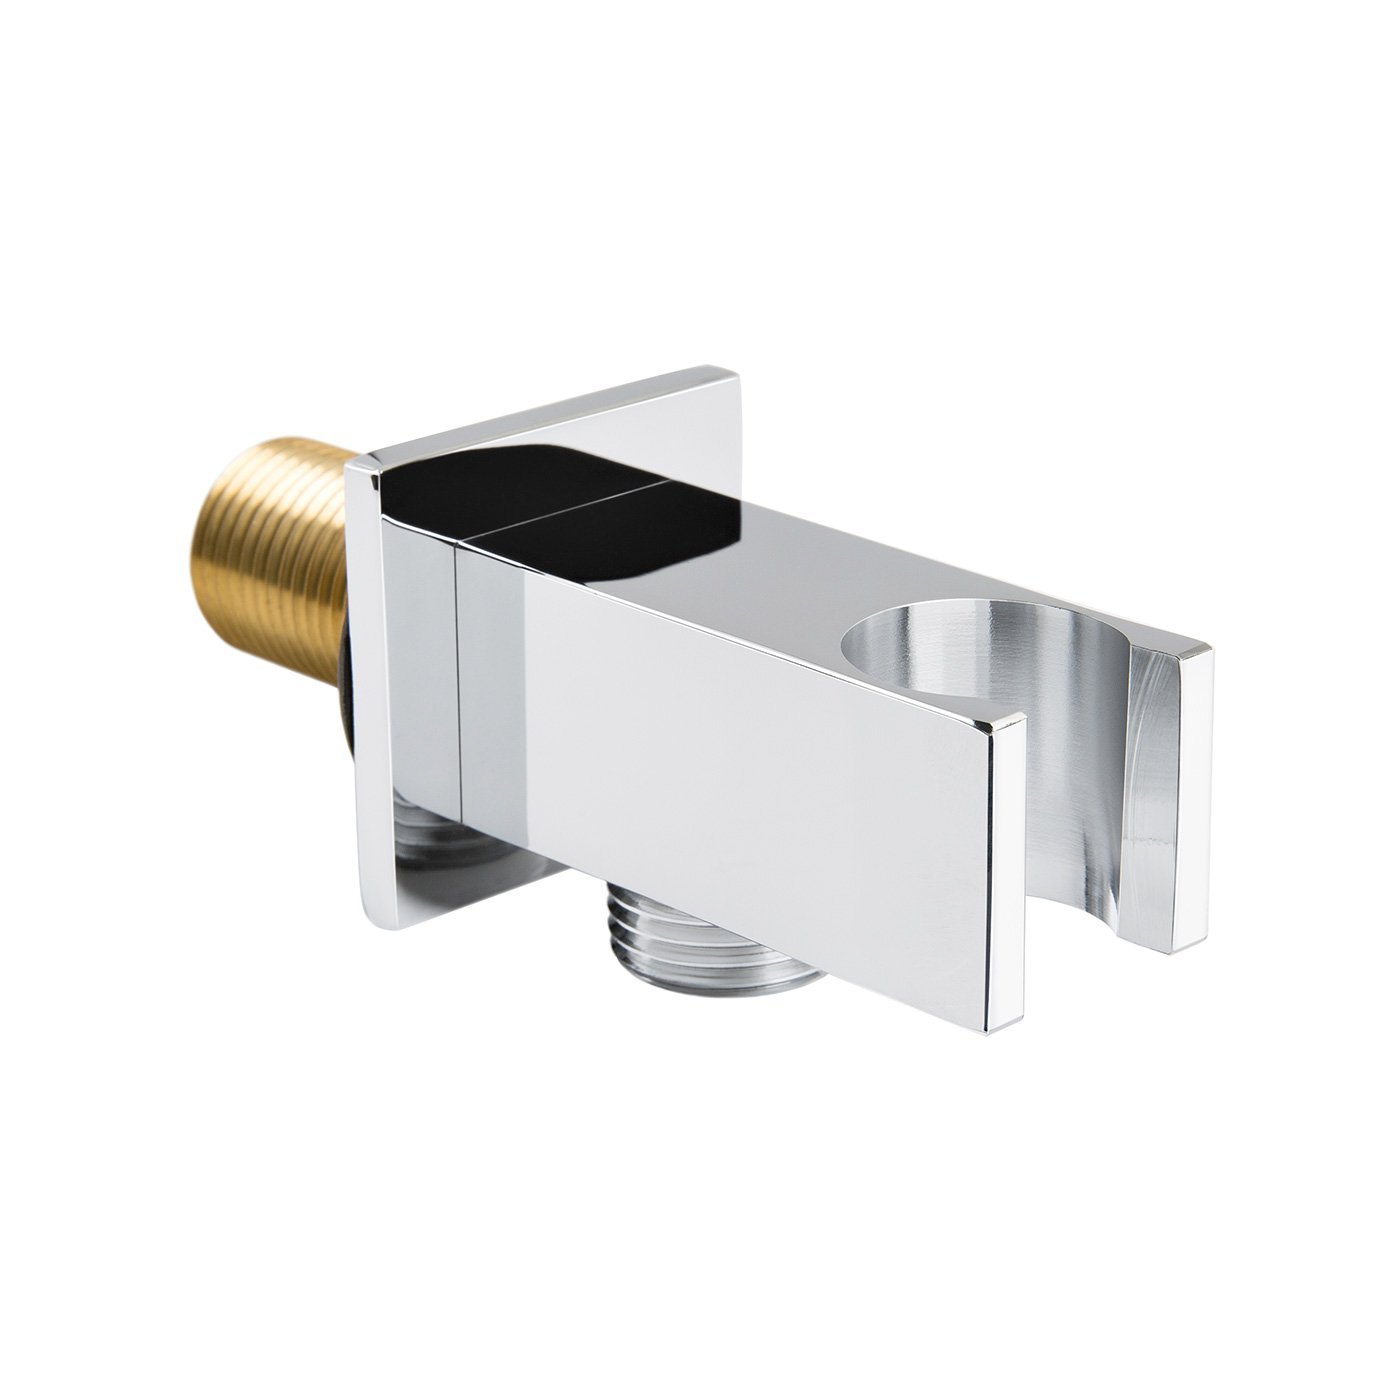 iBathUK Round Chrome Shower Water Outlet Brass Elbow Hose Connector with Handset Holder SC02